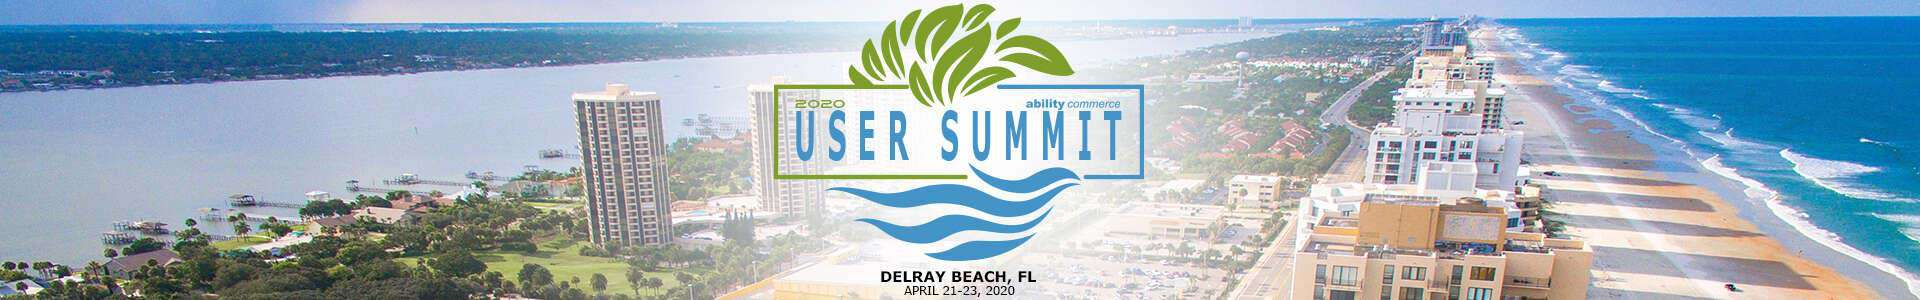 2020 User Summit Header